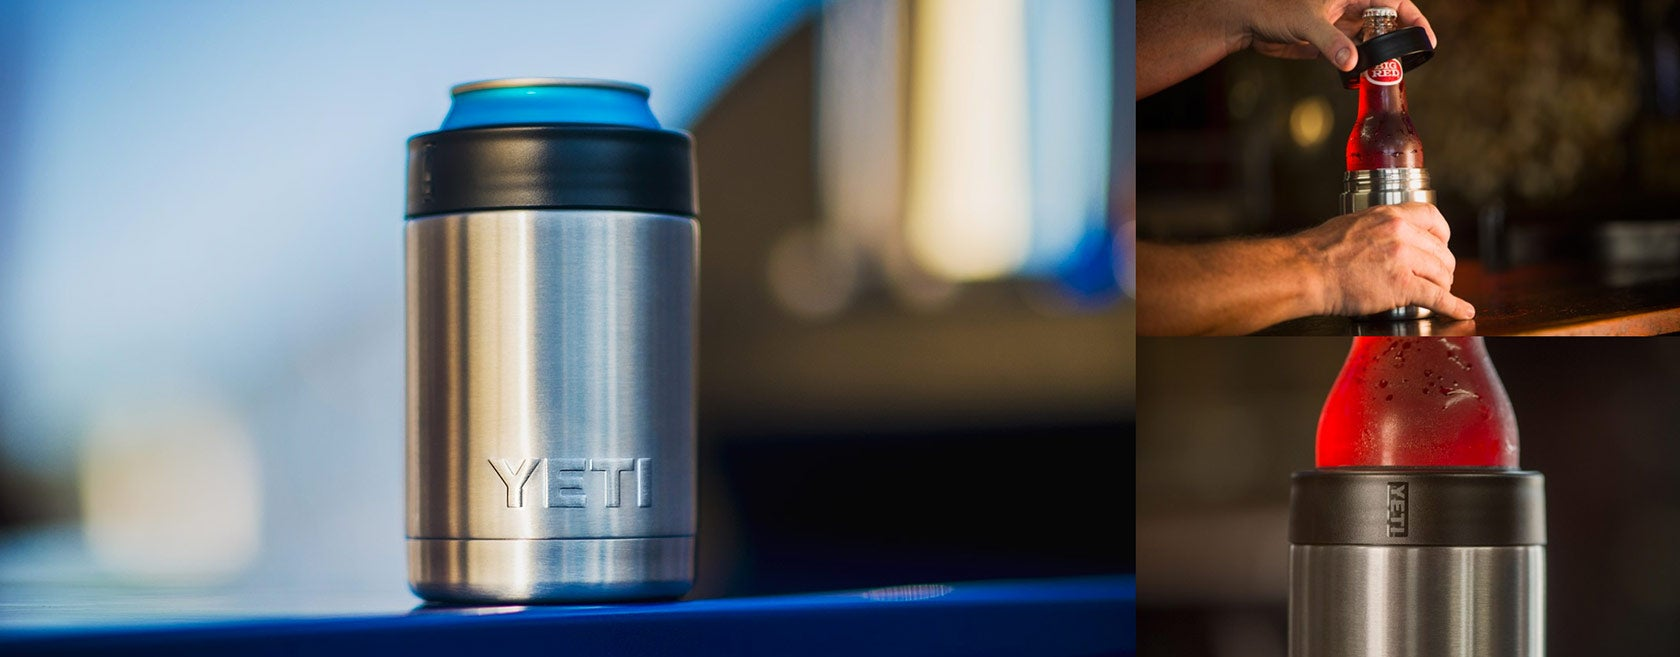 yeti rambler colster around both a beer can and bottle